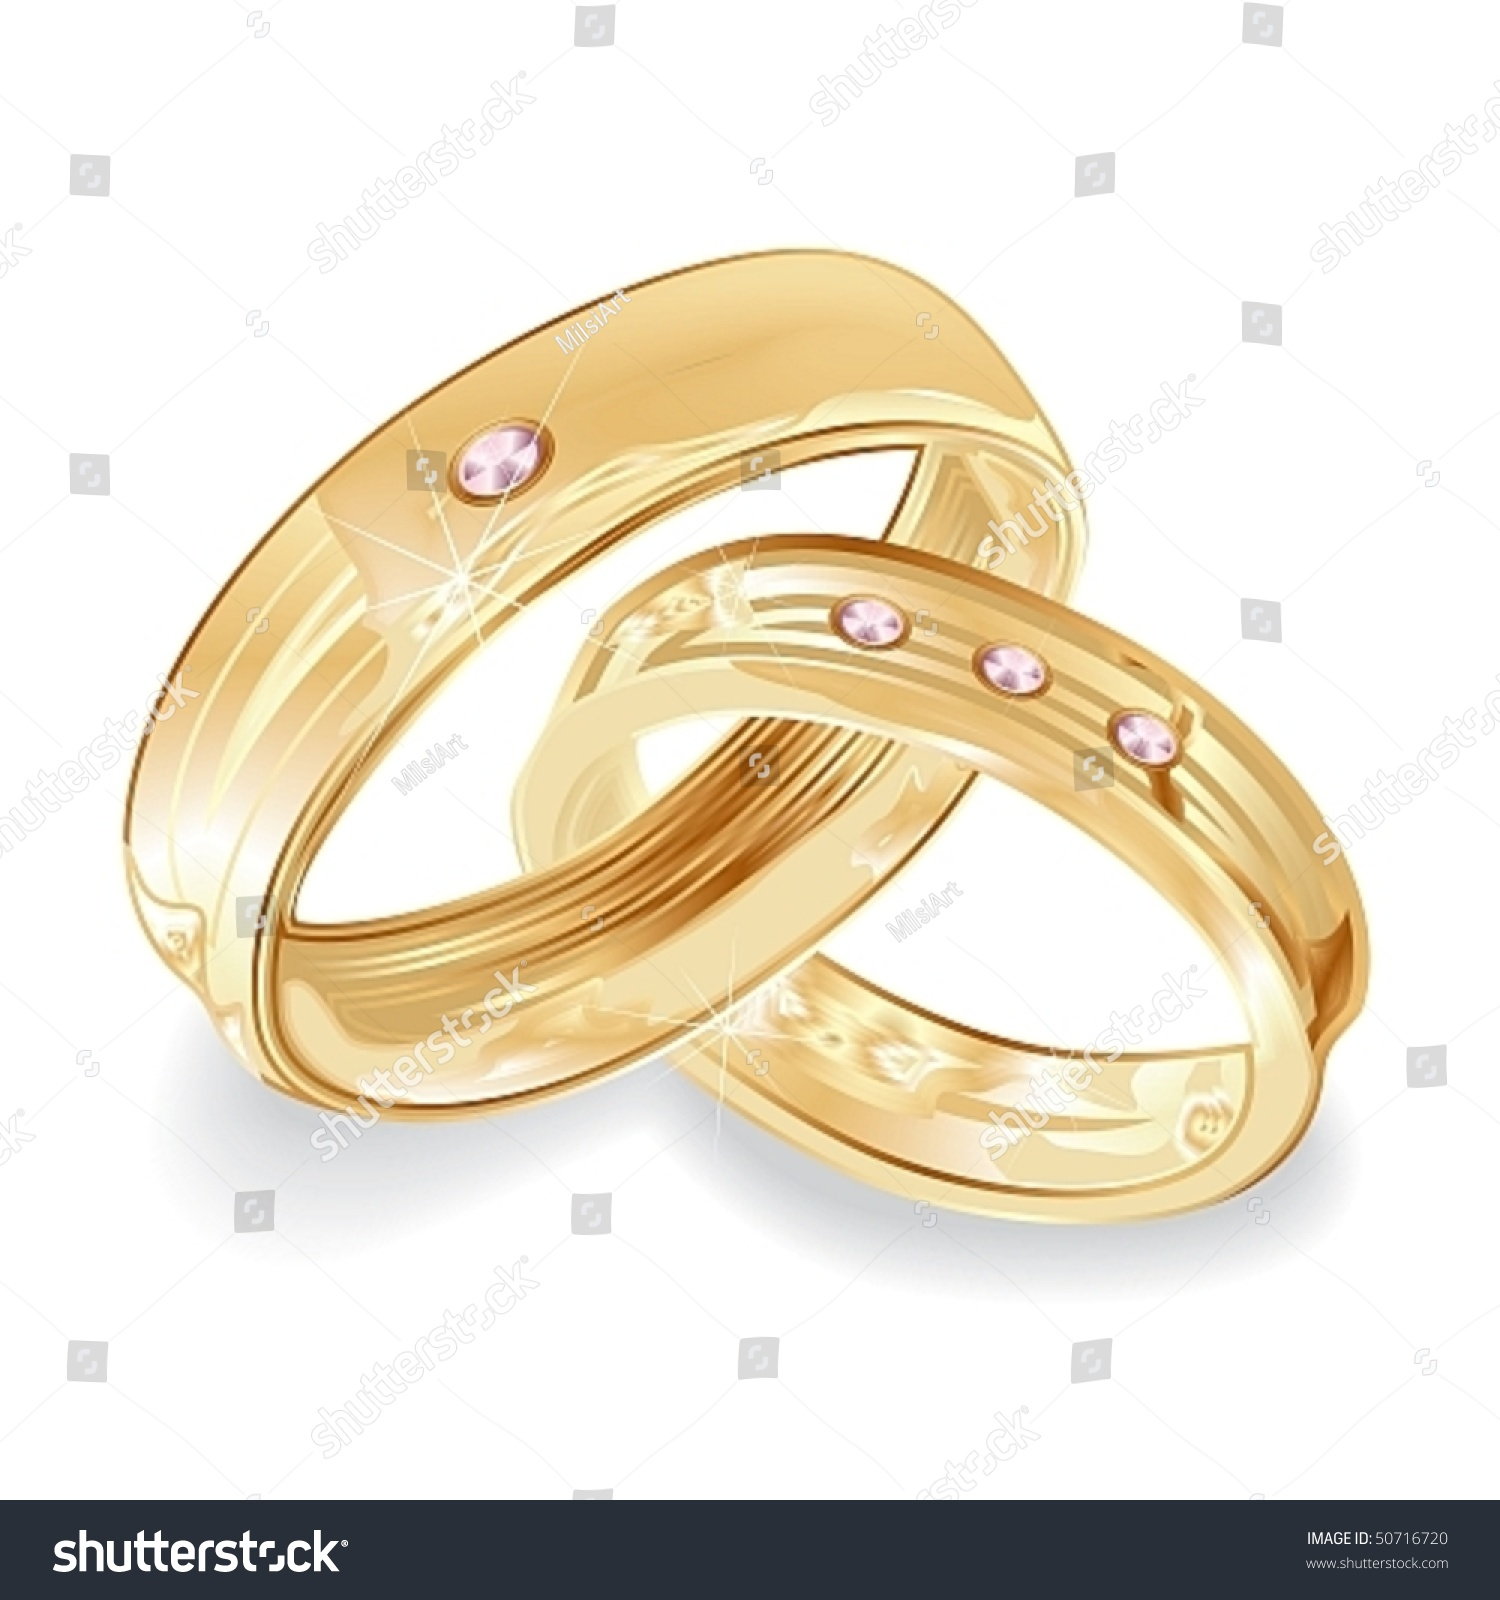 ring of picture wedding pin roses two golden and red rings wallpaper